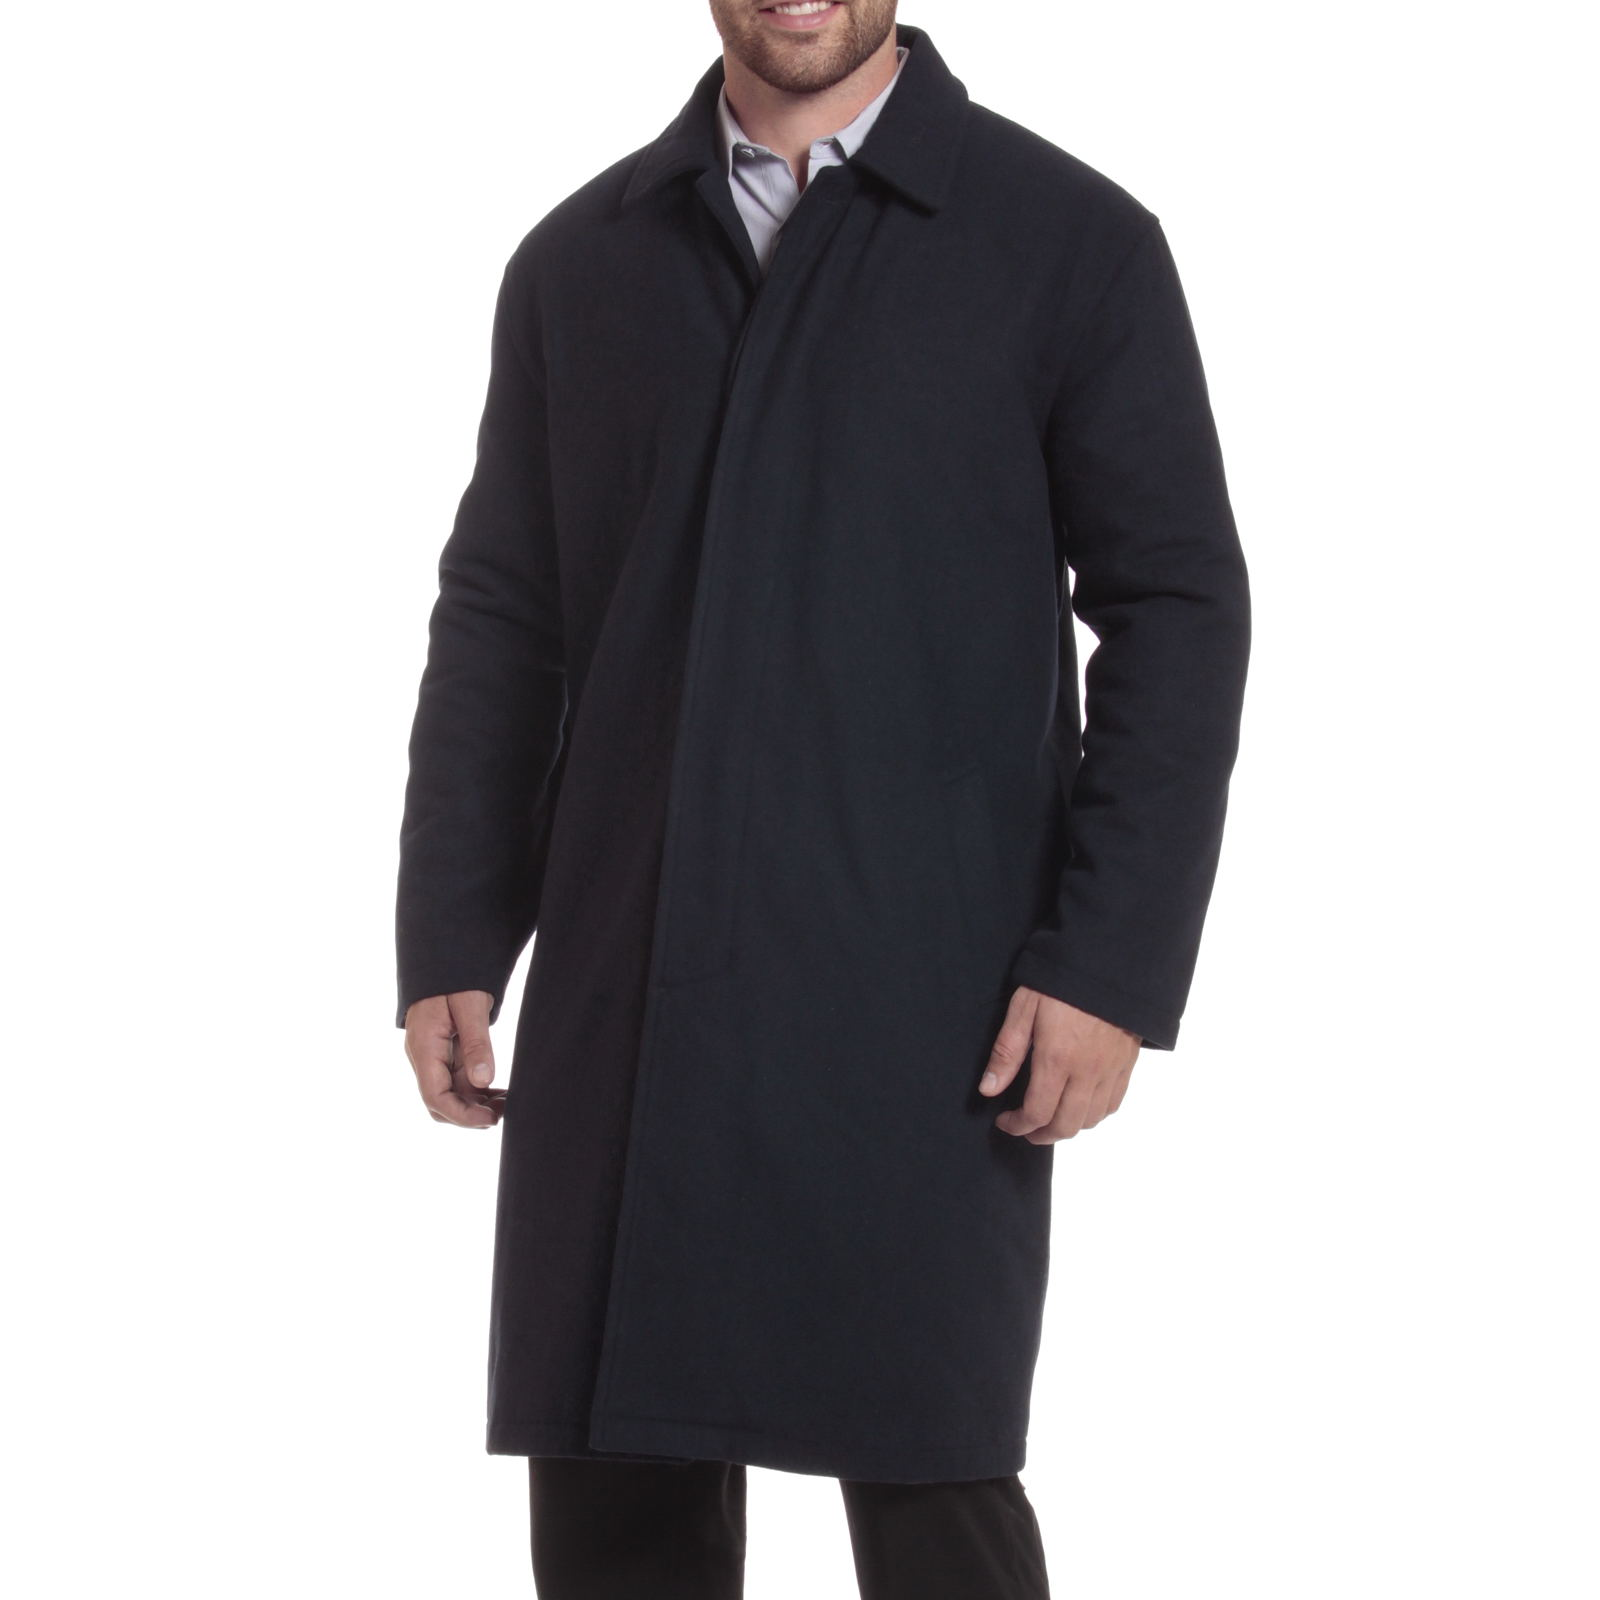 Alpine-Swiss-Mens-Zach-Knee-Length-Jacket-Top-Coat-Trench-Wool-Blend-Overcoat thumbnail 48